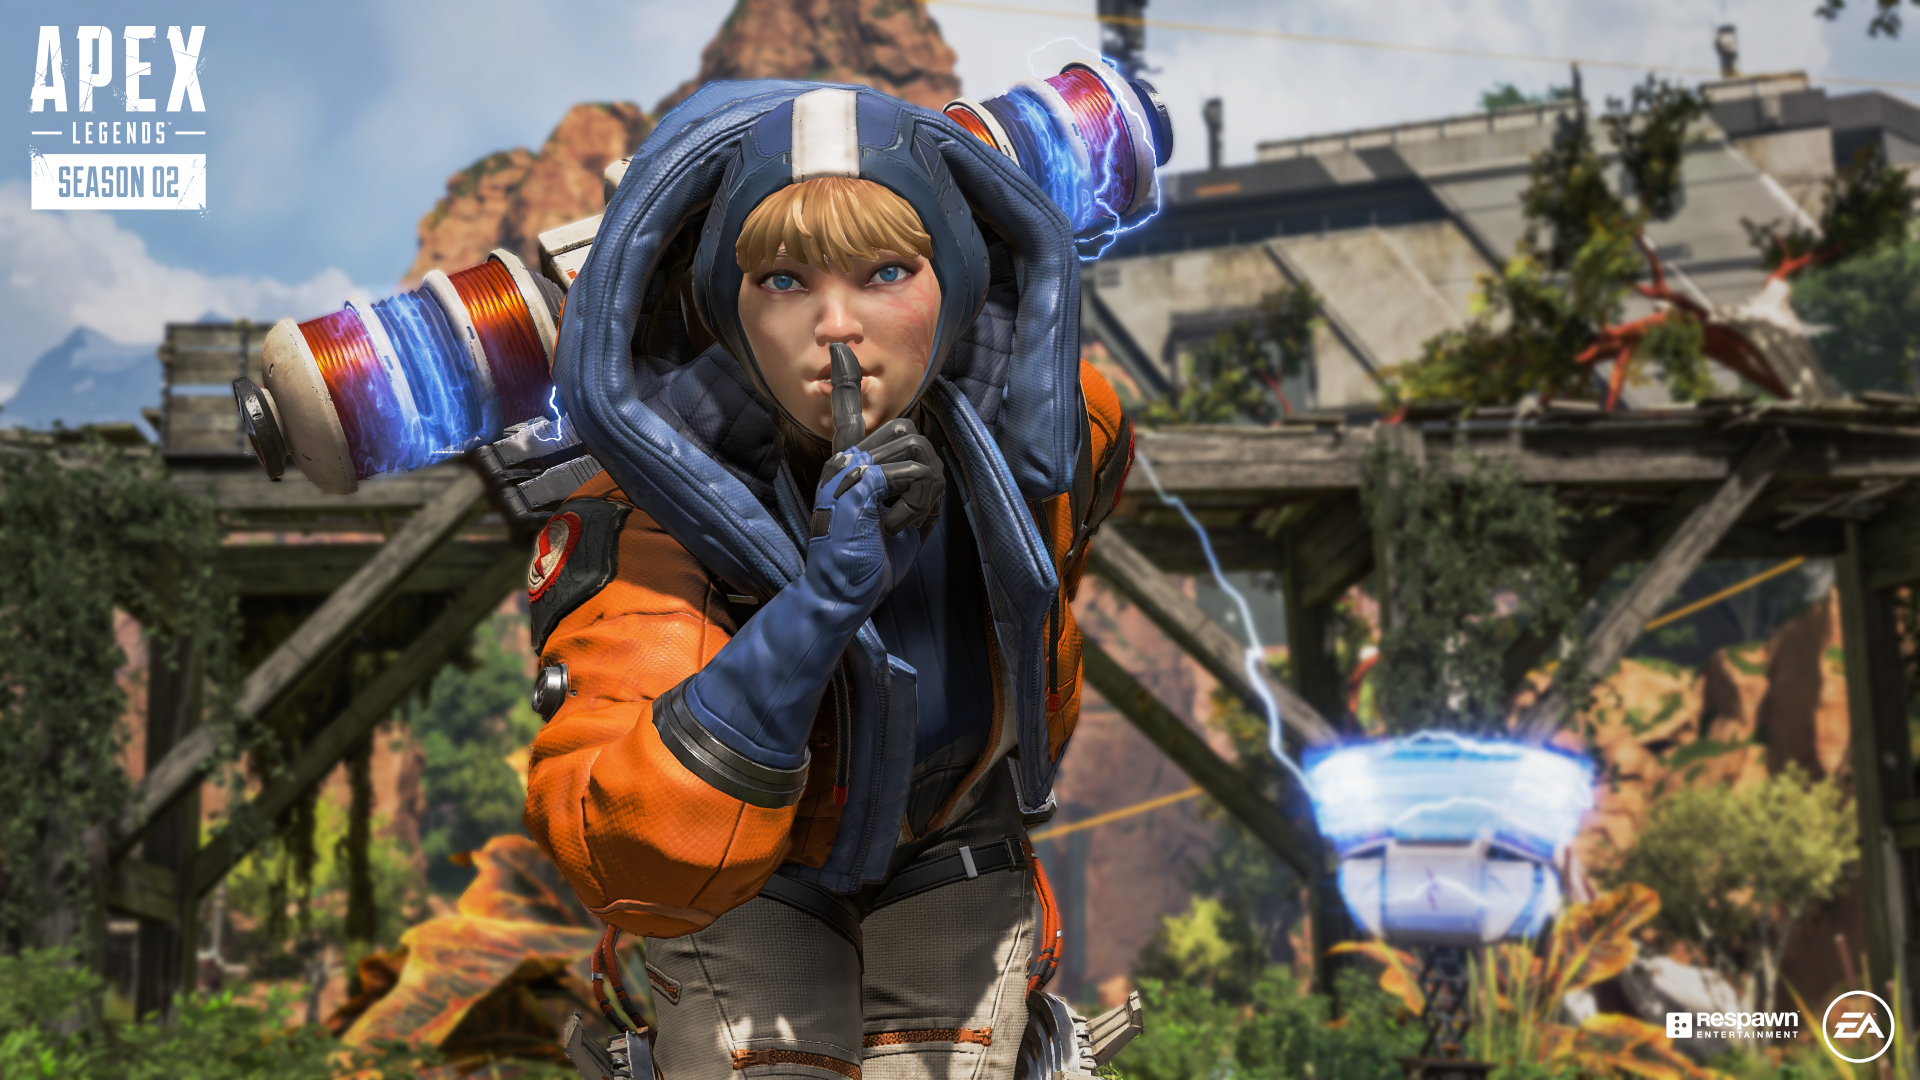 How to claim Apex Legends' Twitch Prime content drop | TechRadar